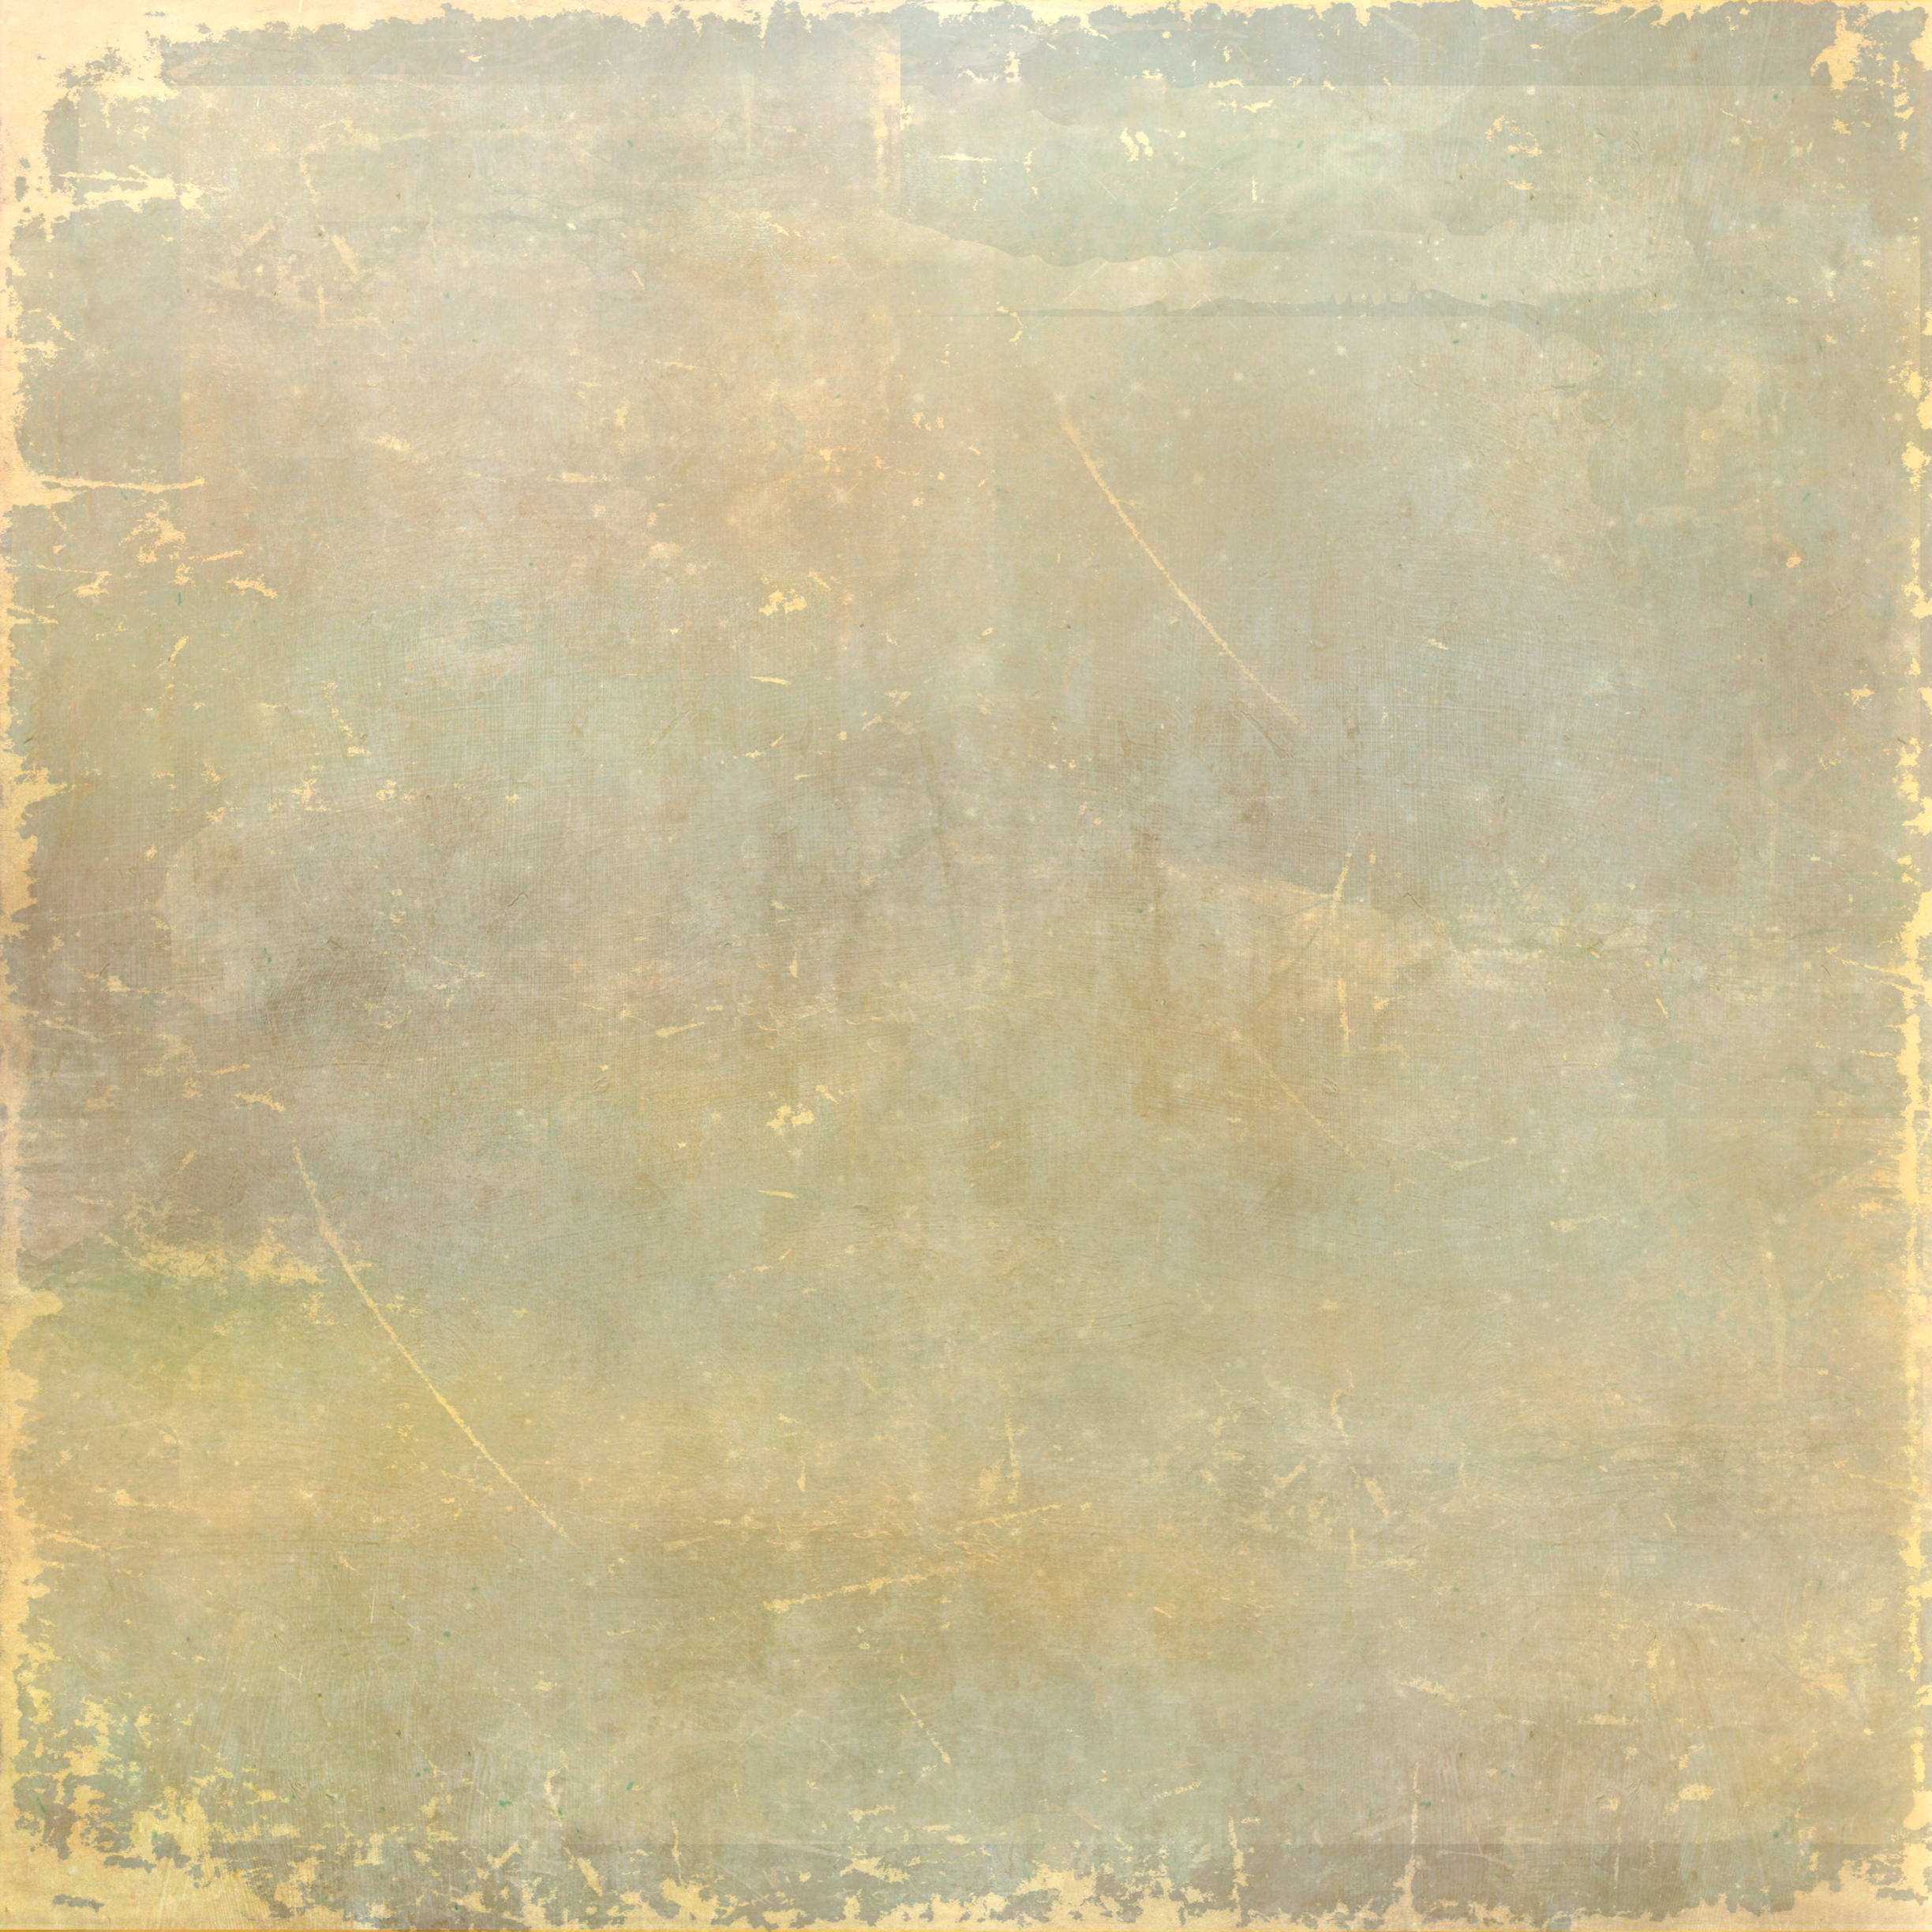 You can download this texture  here .